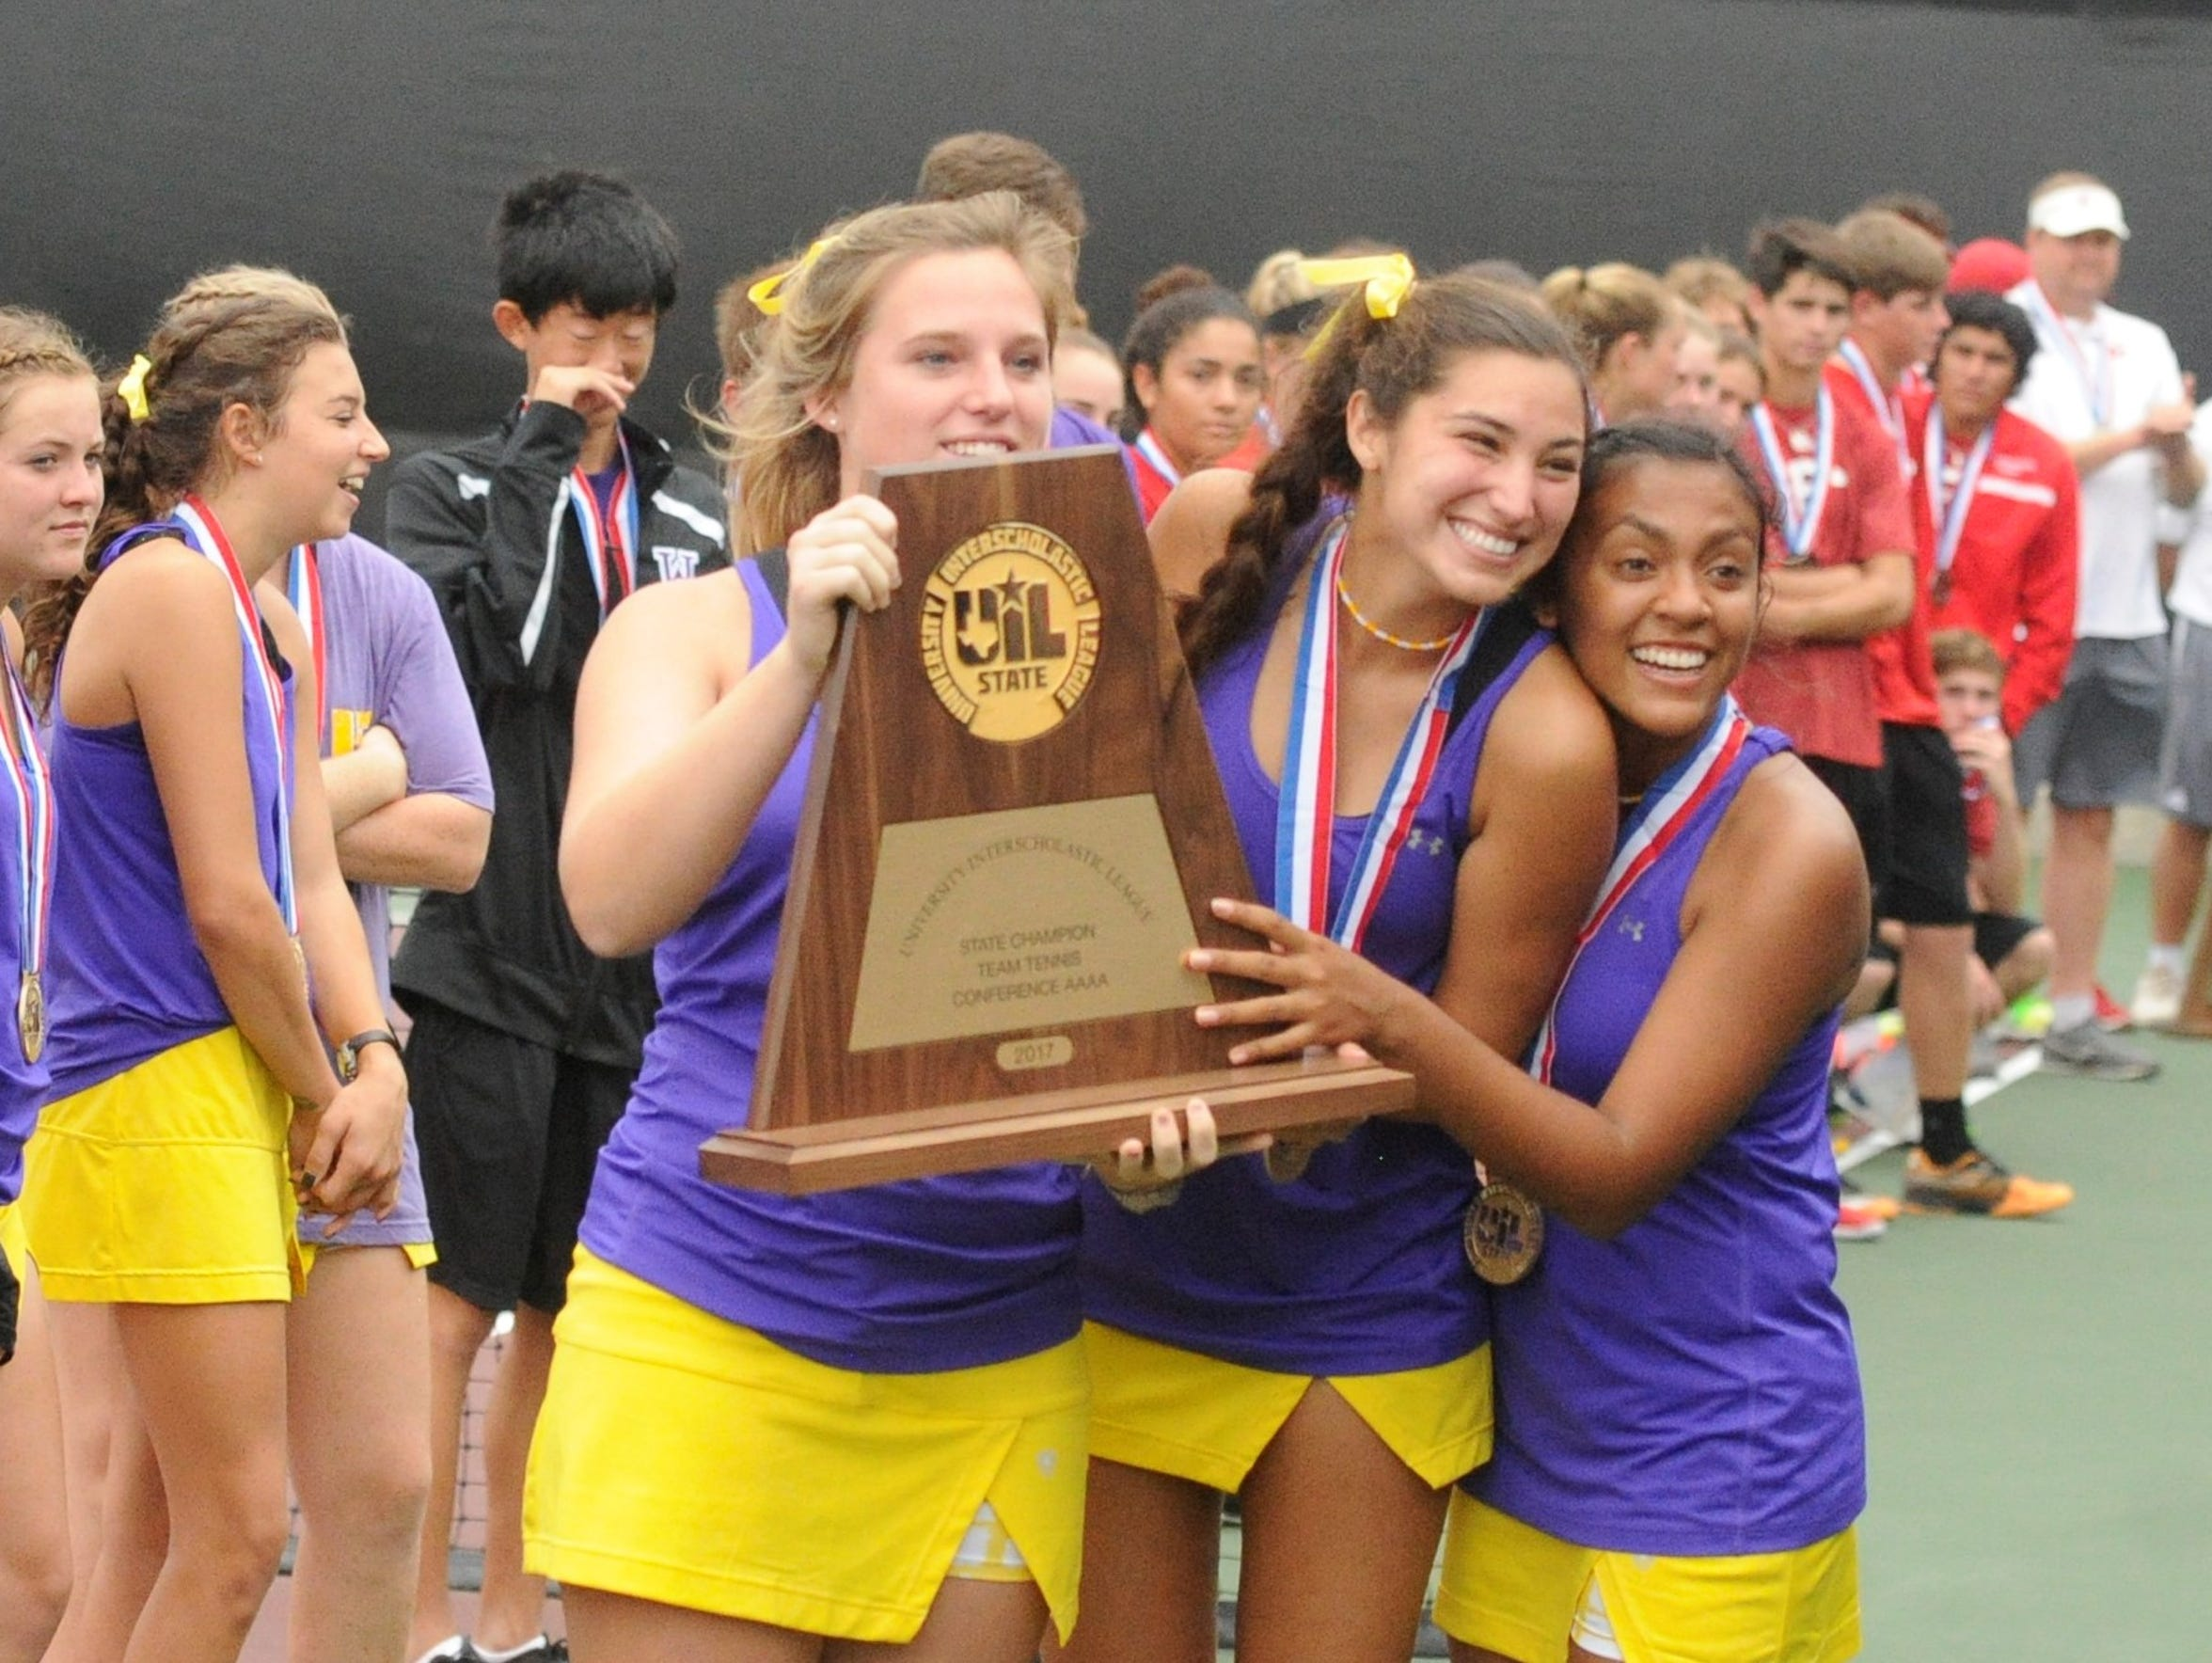 Wylie senior girls Andrea McMillan, Kaitlyn Hathorn and Shruti Patel pose with the Class 4A state championship trophy after a 10-0 win against Fredericksburg.